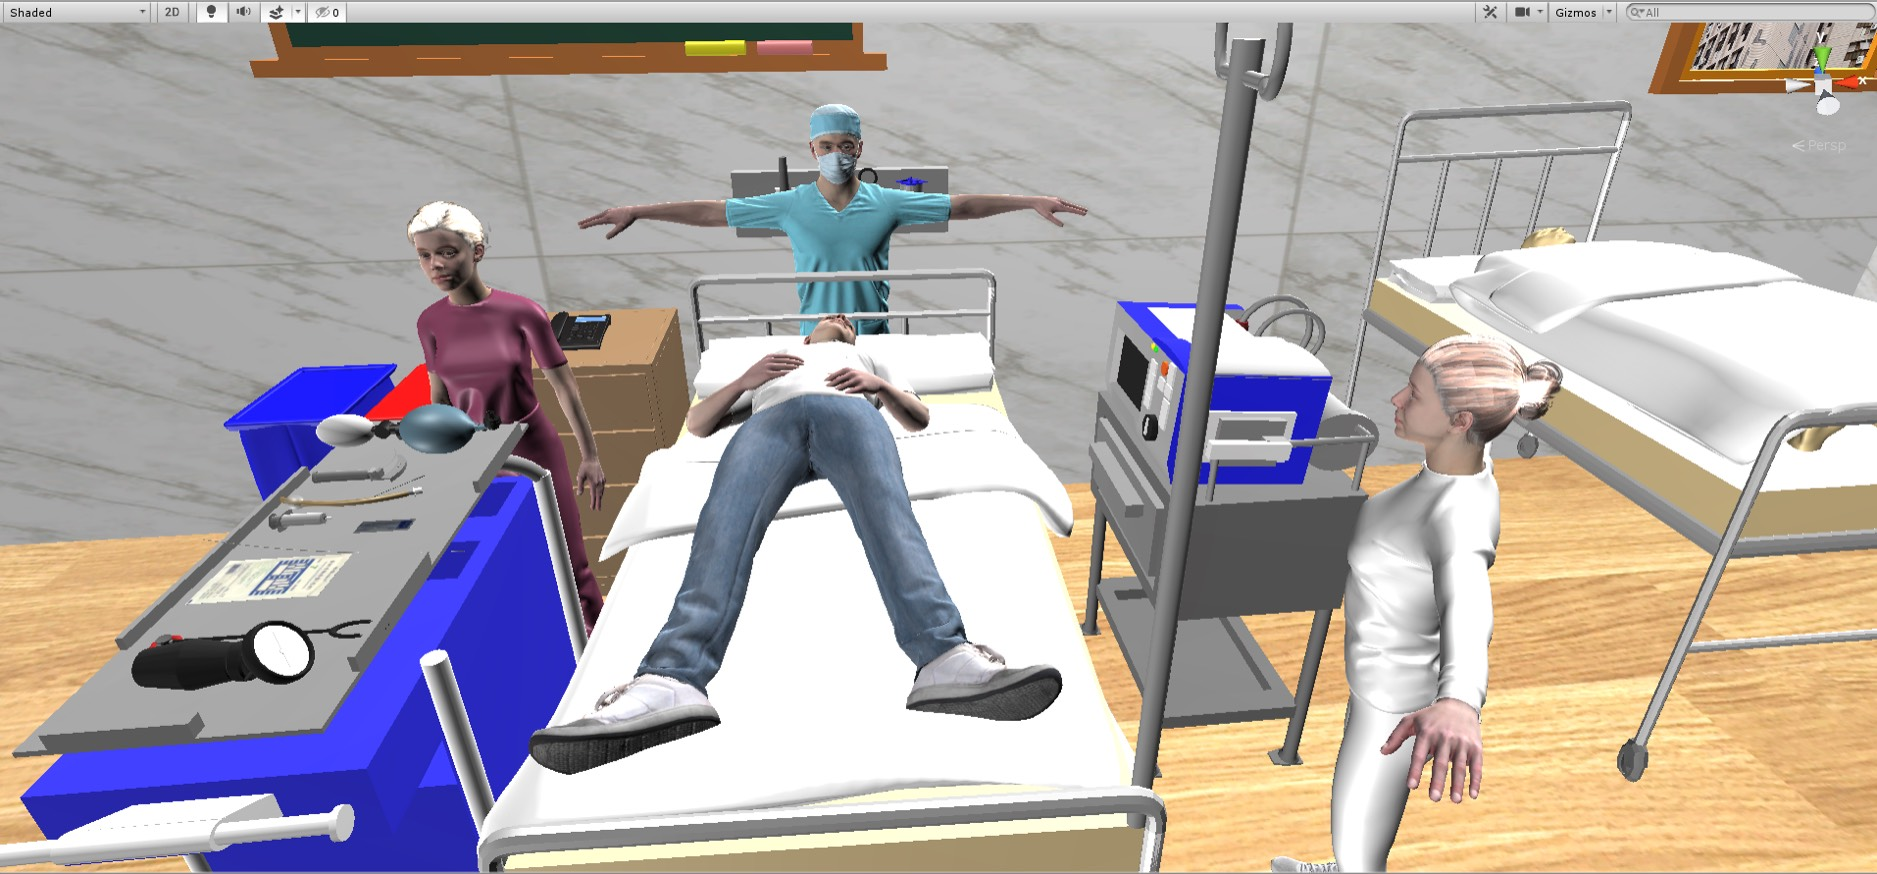 Immersive Virtual Reality Emergency Care Situation Simulation System